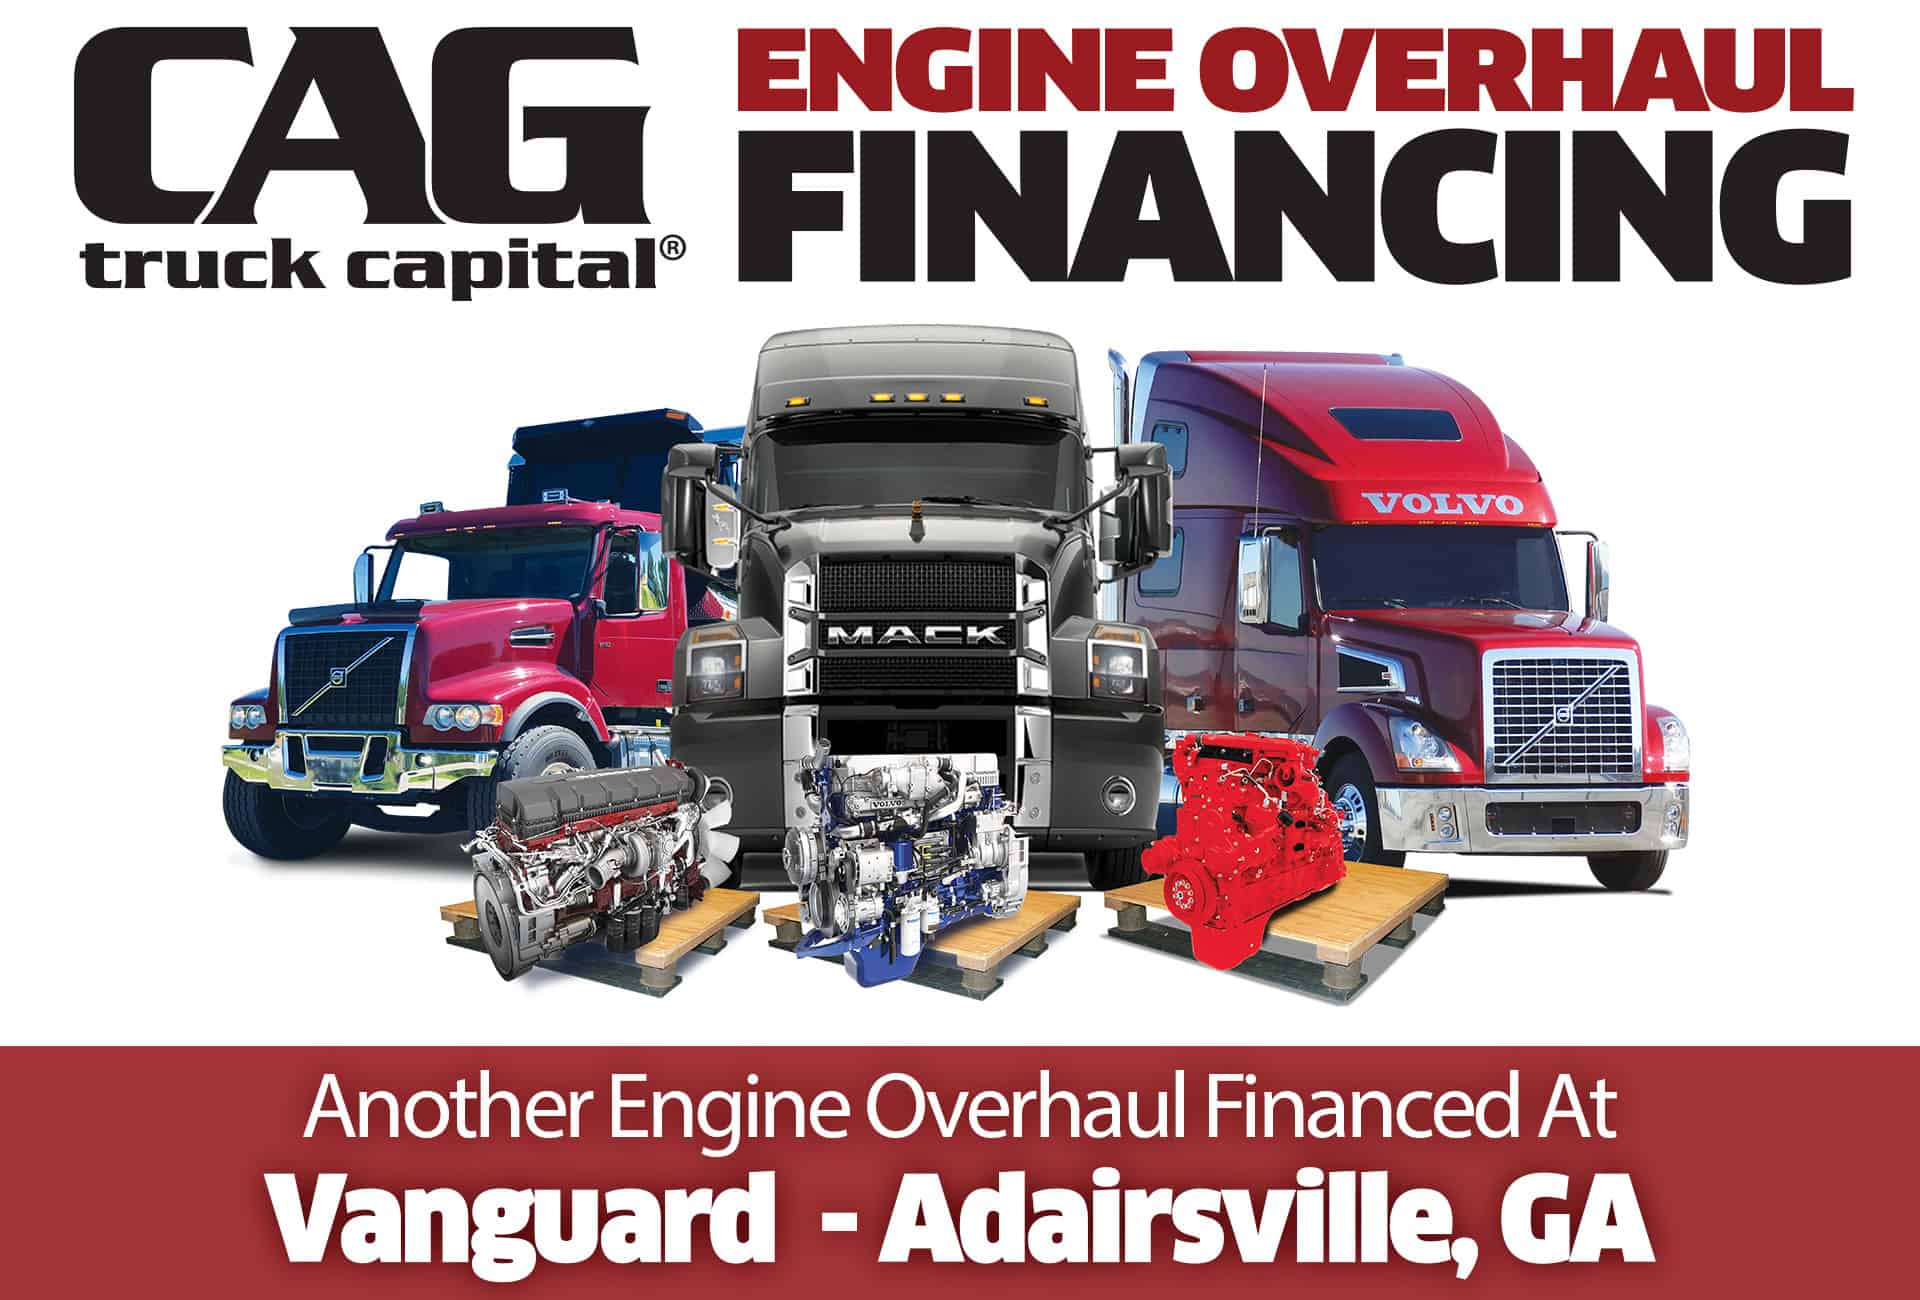 Vanguard Truck Service Center Adairsville, GA